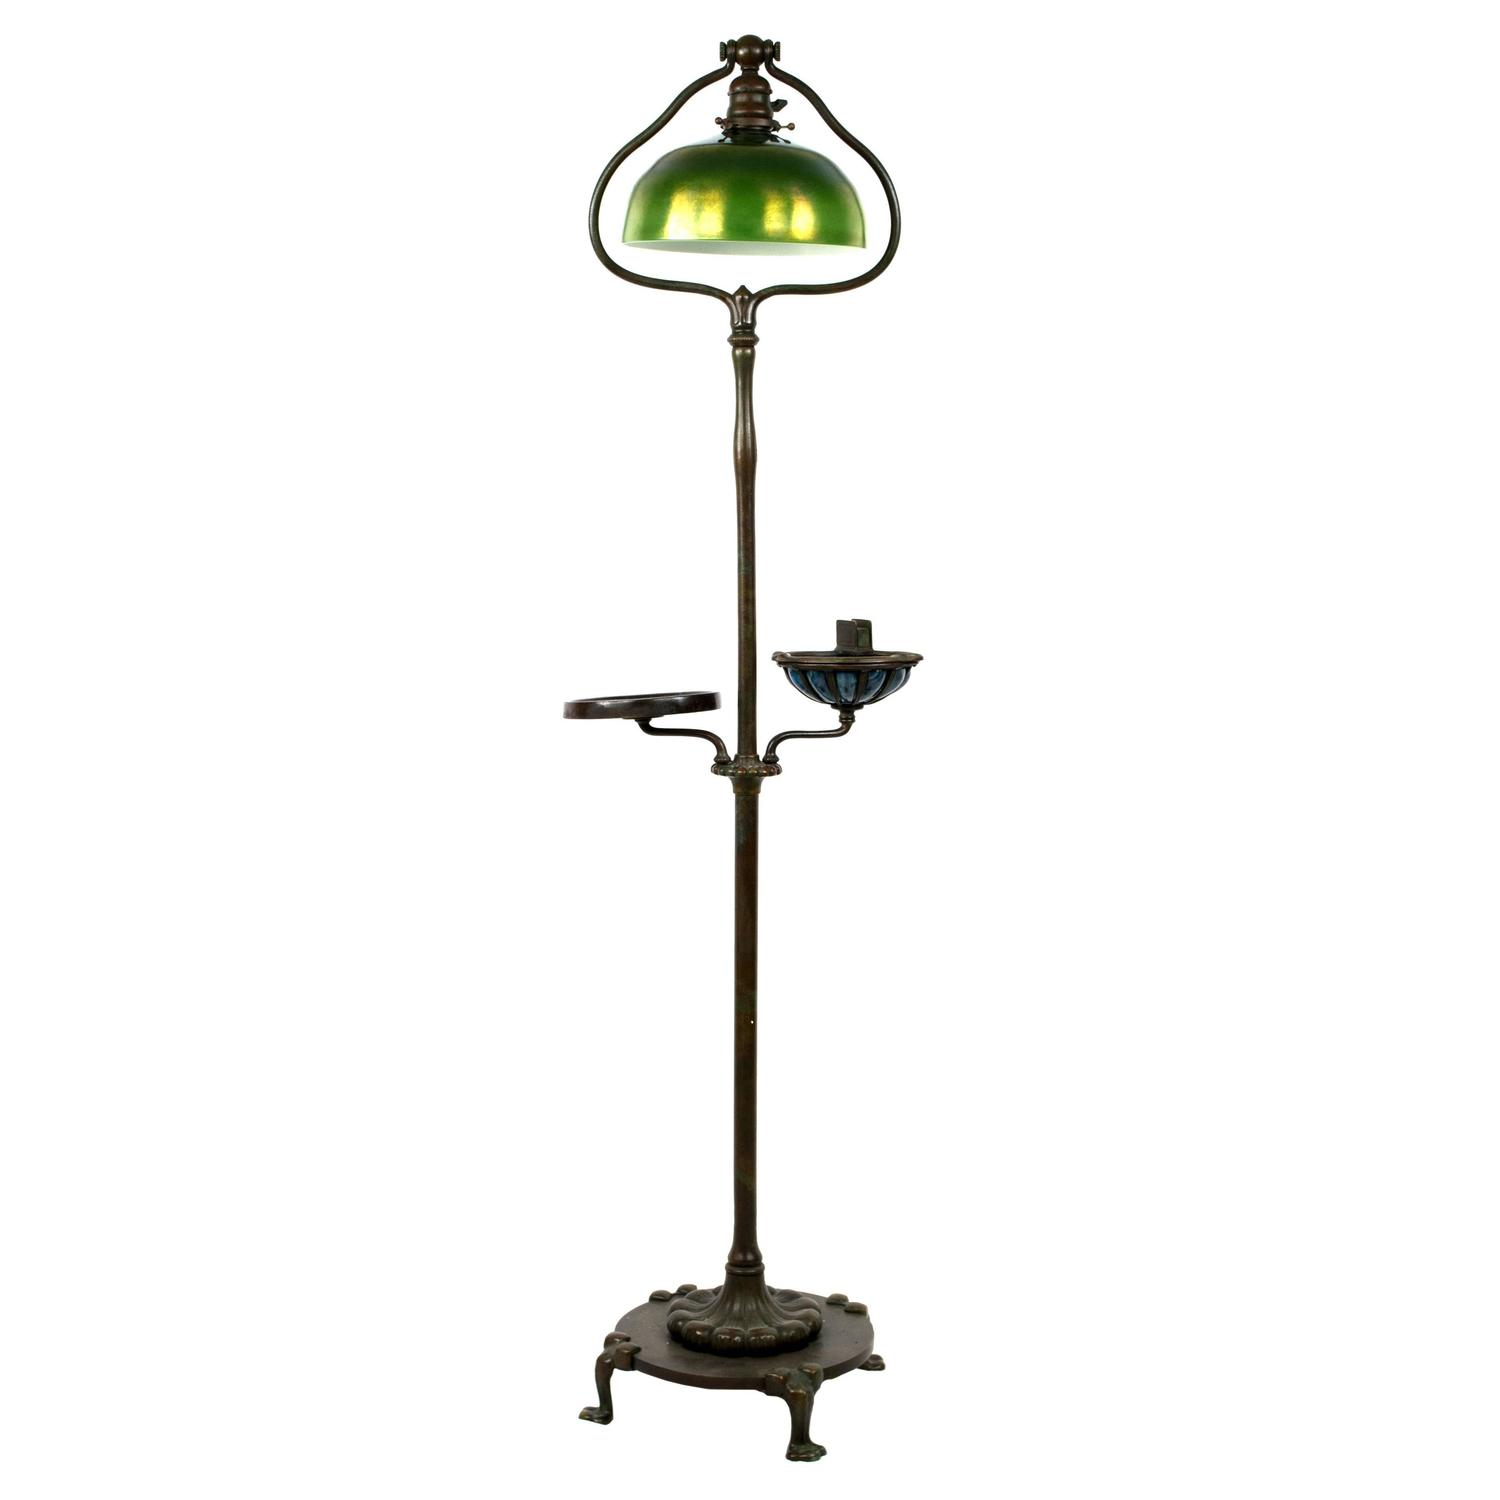 tiffany floor lamp with favrile glass shade at 1stdibs. Black Bedroom Furniture Sets. Home Design Ideas